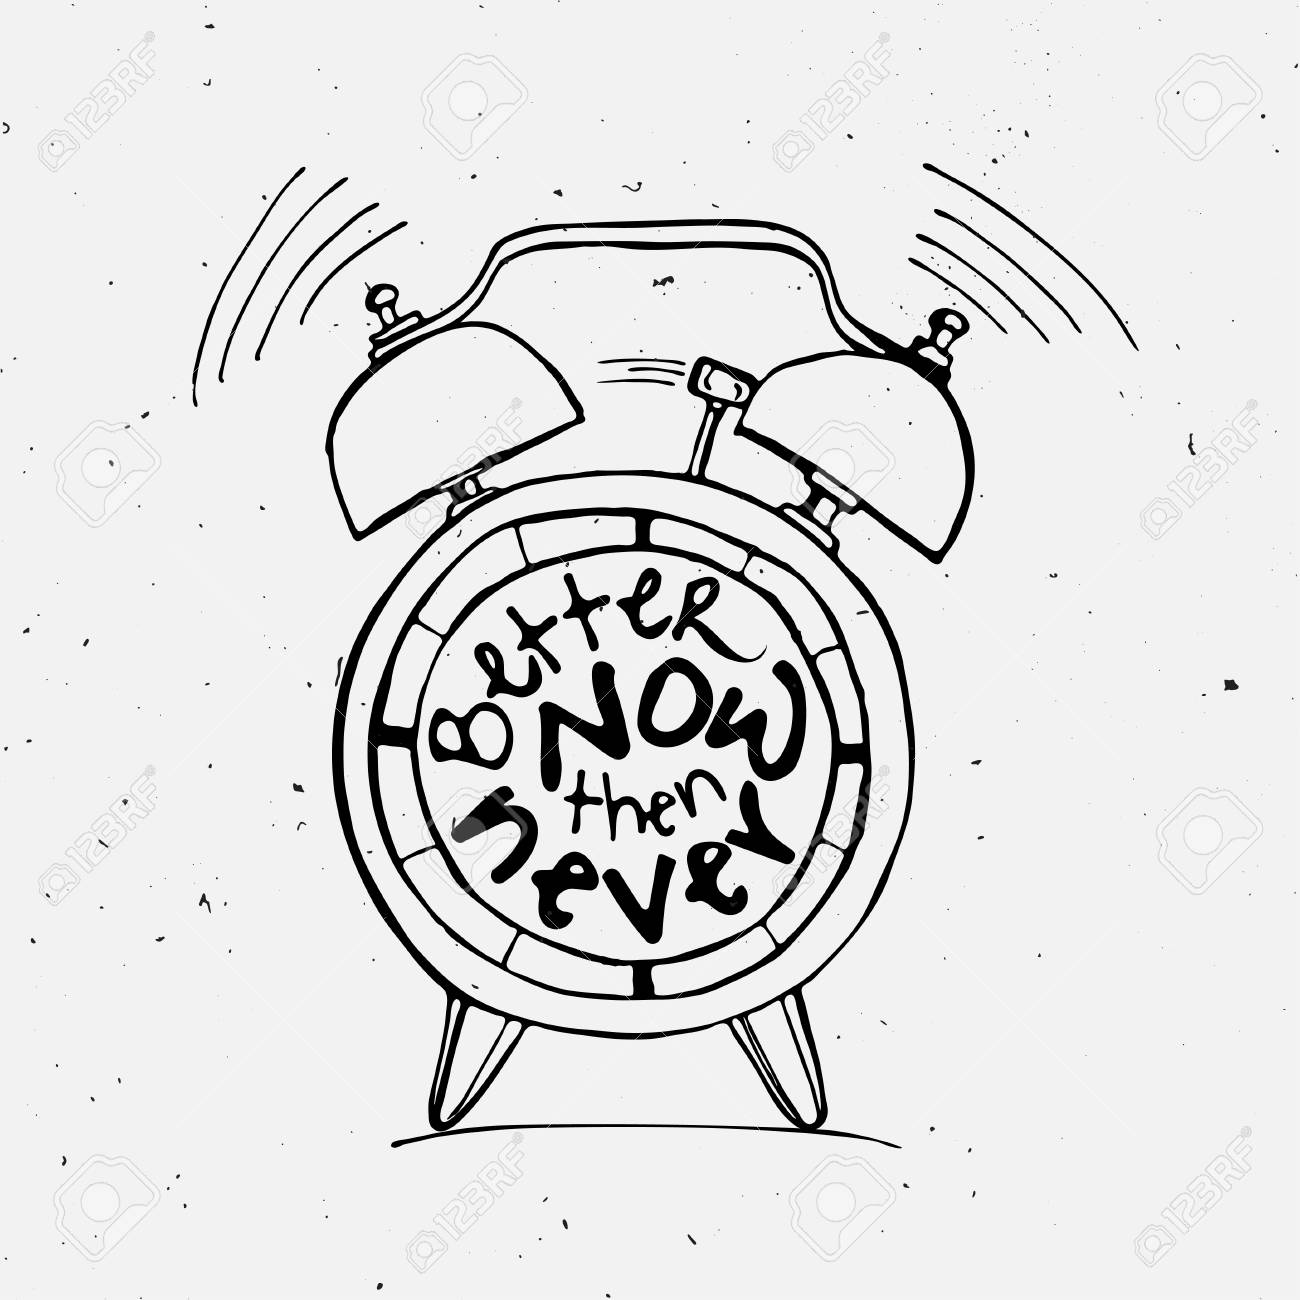 hand draw alarm clock illustration with lettering about better Clock Worksheets hand draw alarm clock illustration with lettering about better now then never concept time reminder